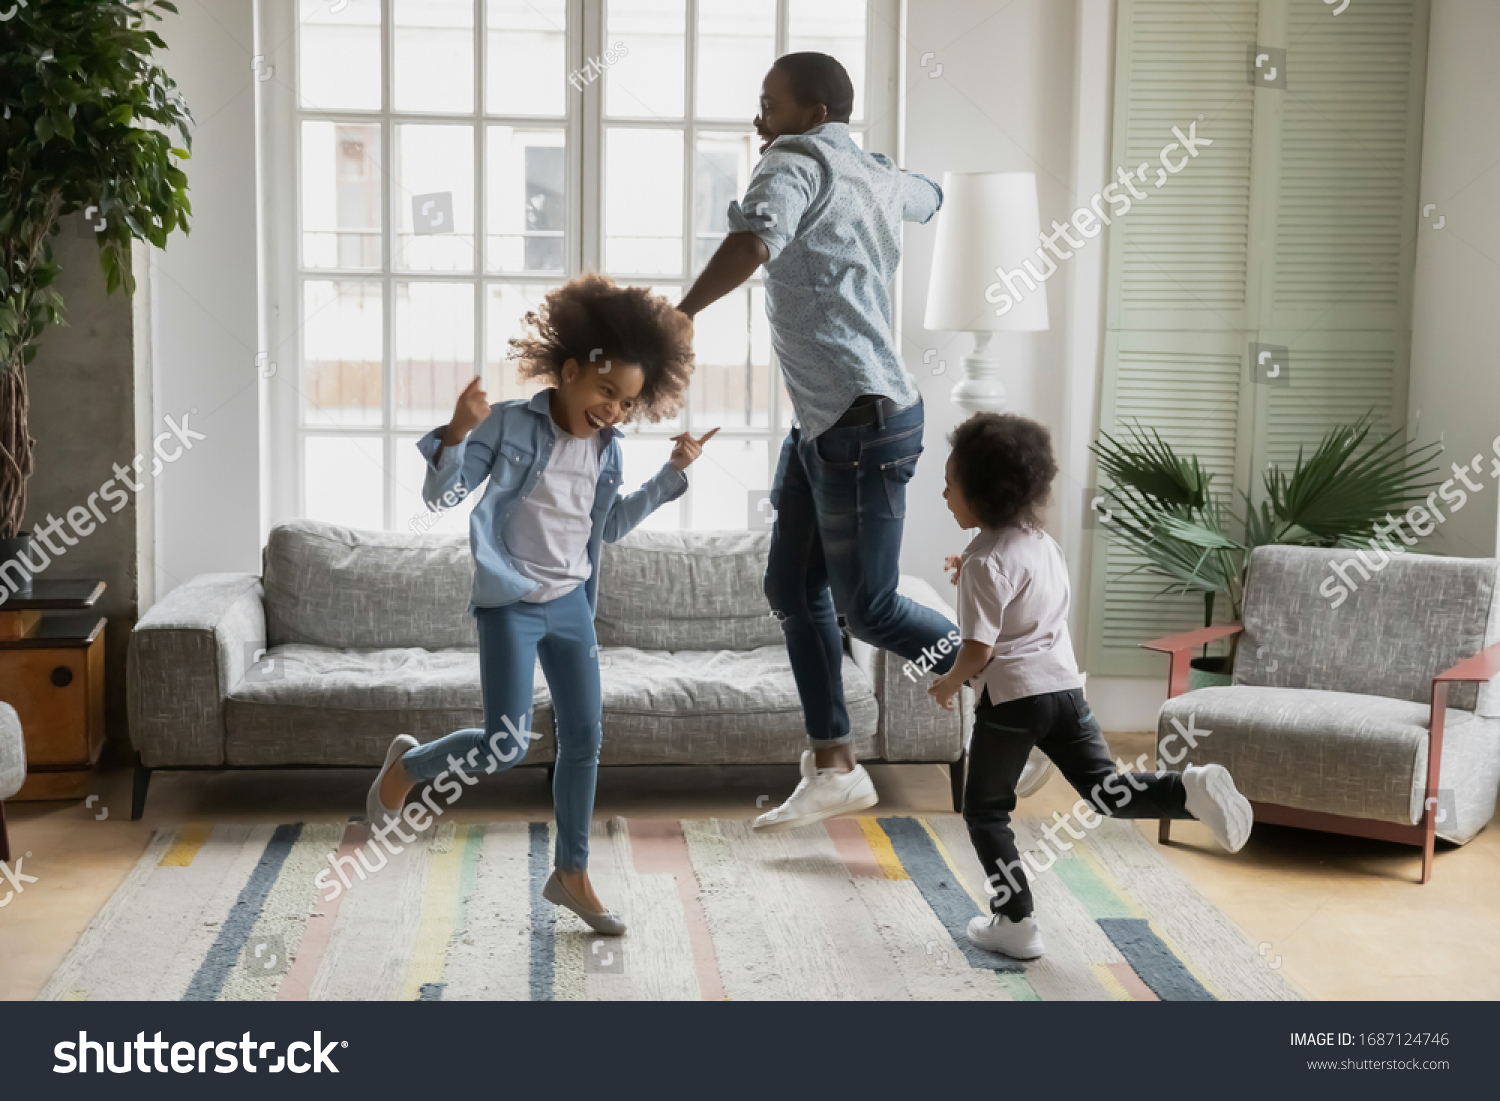 Active african funny dad little son and crazy daughter heavy metal or rock and roll lovers dancing in cozy living room relish life fooling around listening cool music scream with joy enjoy party hard #1687124746